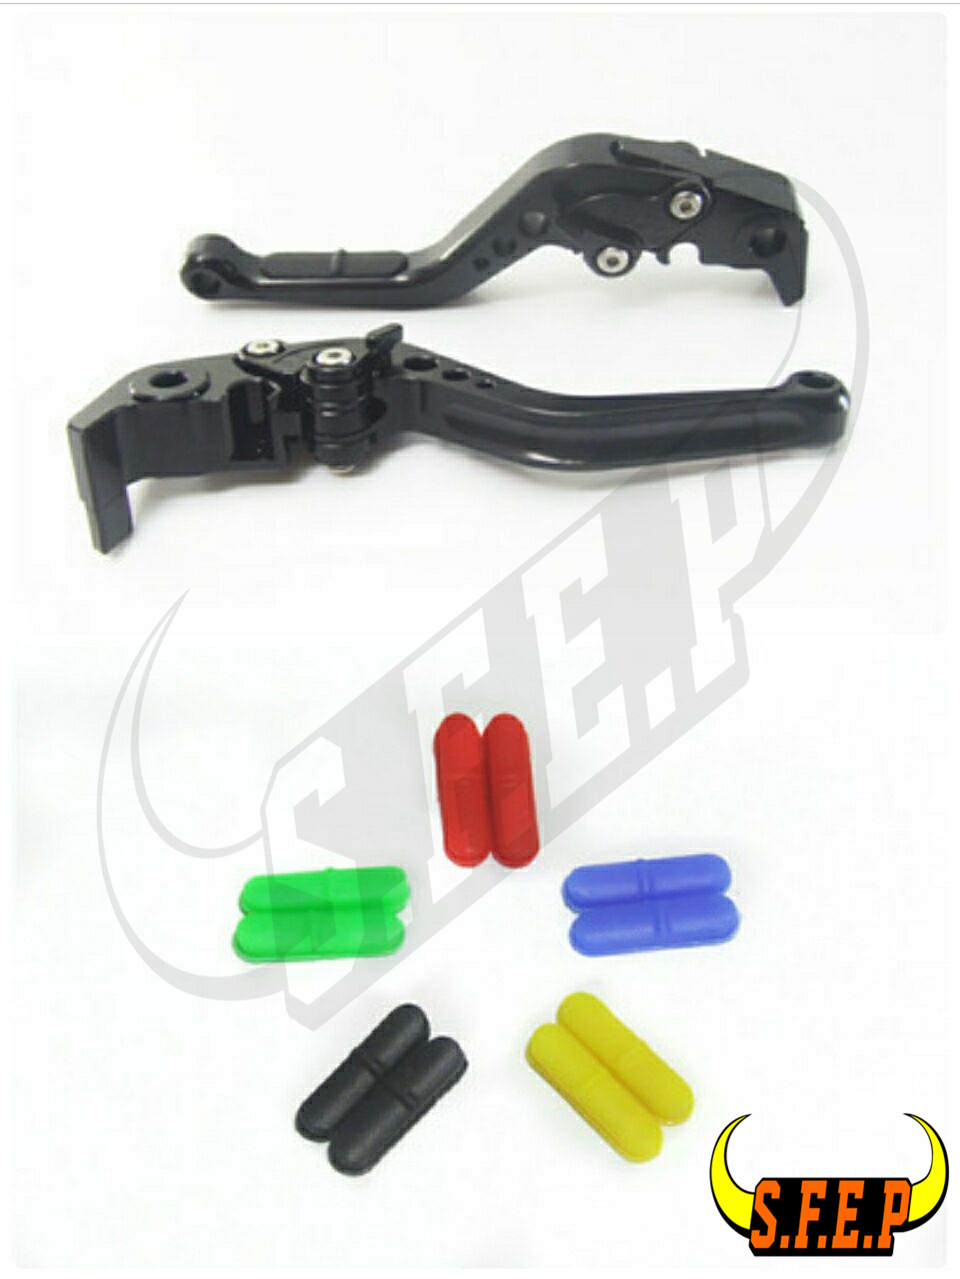 CNC Adjustable Motorcycle Brake and Clutch Levers with Anti-Slip For Suzuki GSR600 2006-2011